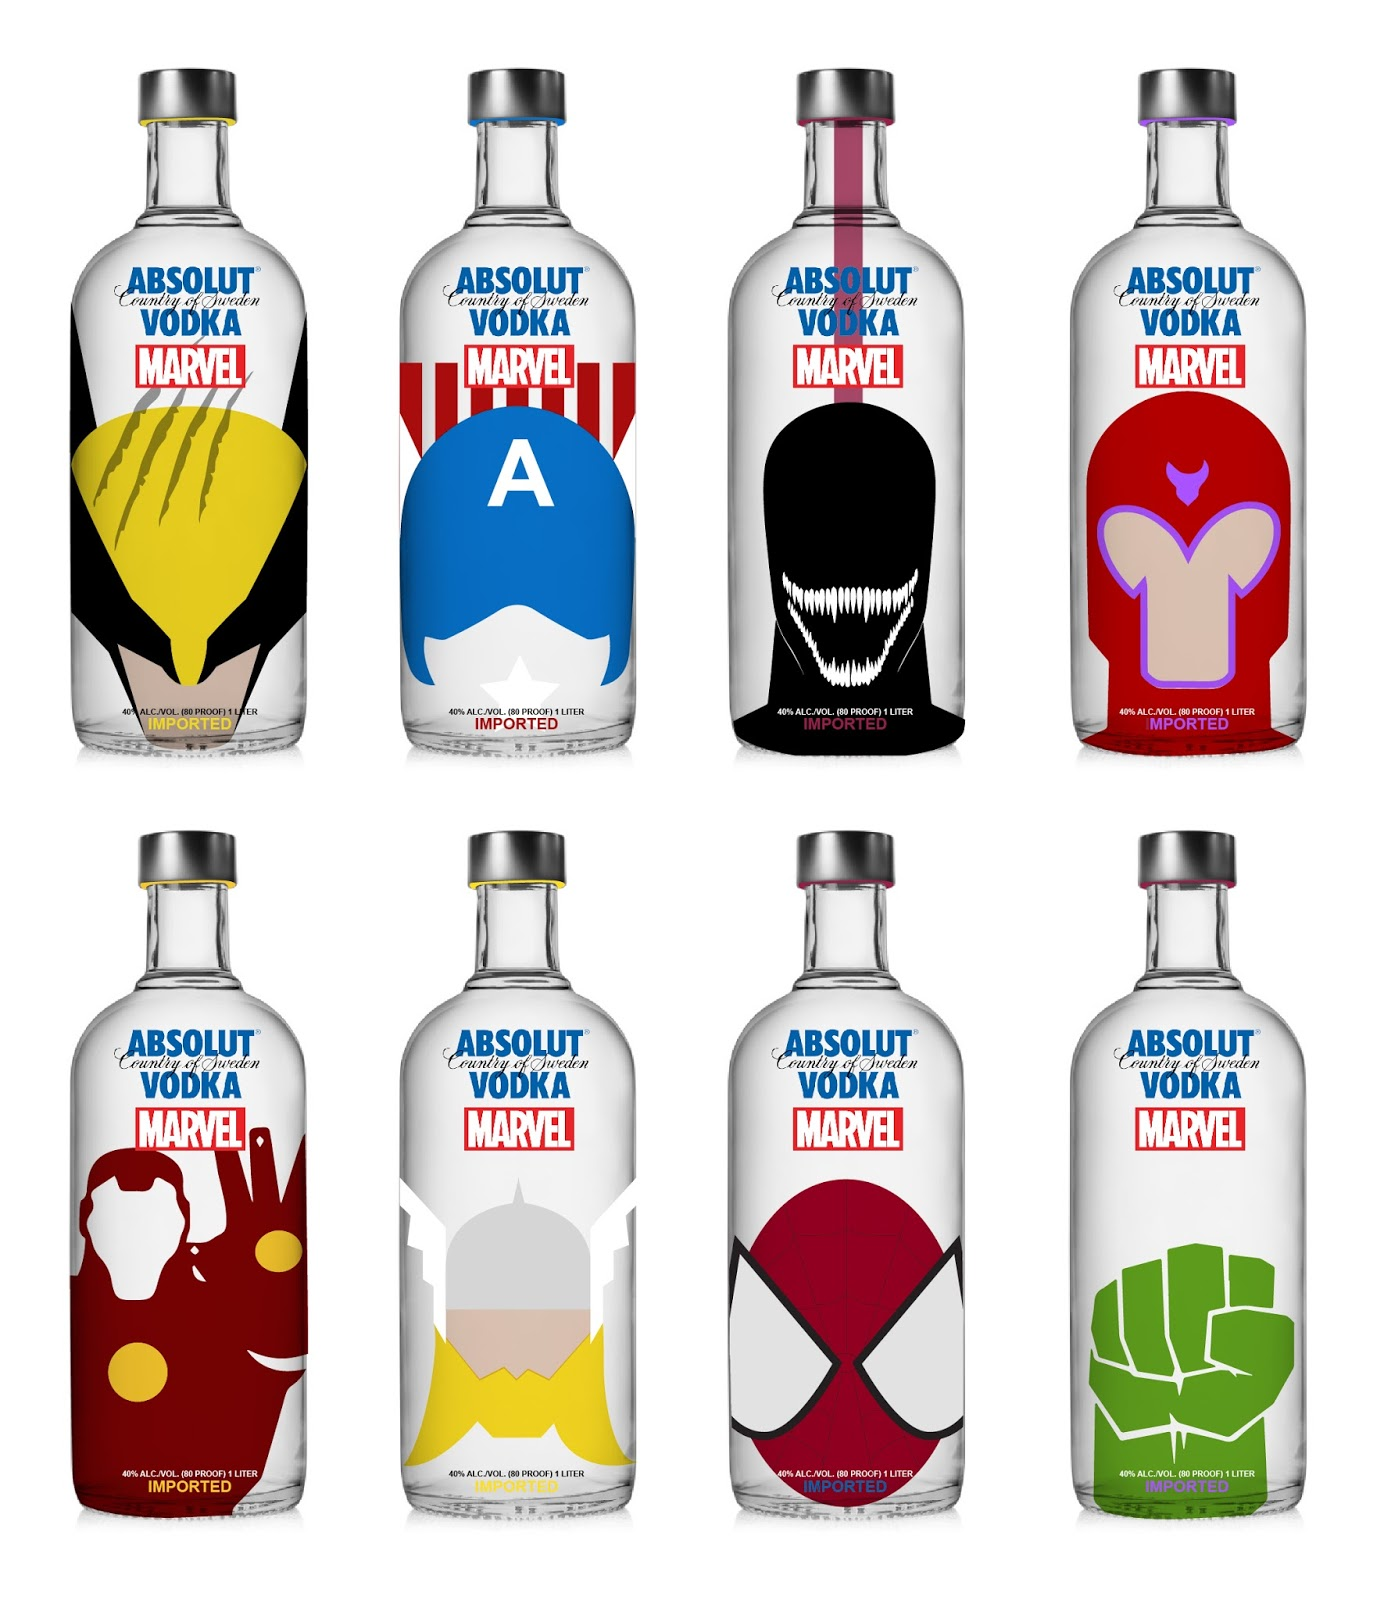 Alcohol clipart vodka bottle. Absolut x marvel concept